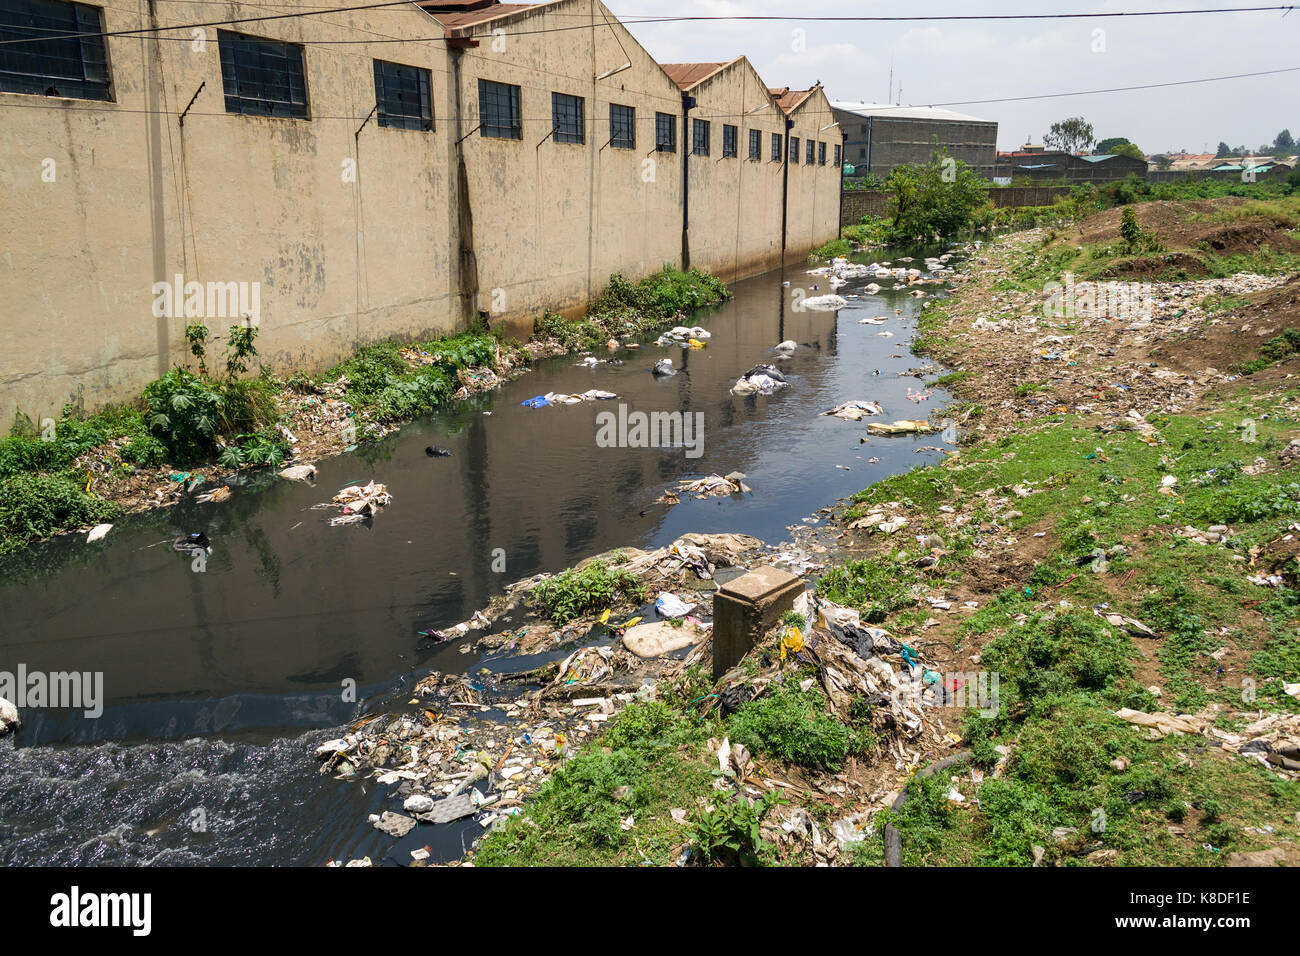 Factory buildings line the Ngong river which is polluted with rubbish, plastic waste and garbage, Nairobi, Kenya - Stock Image